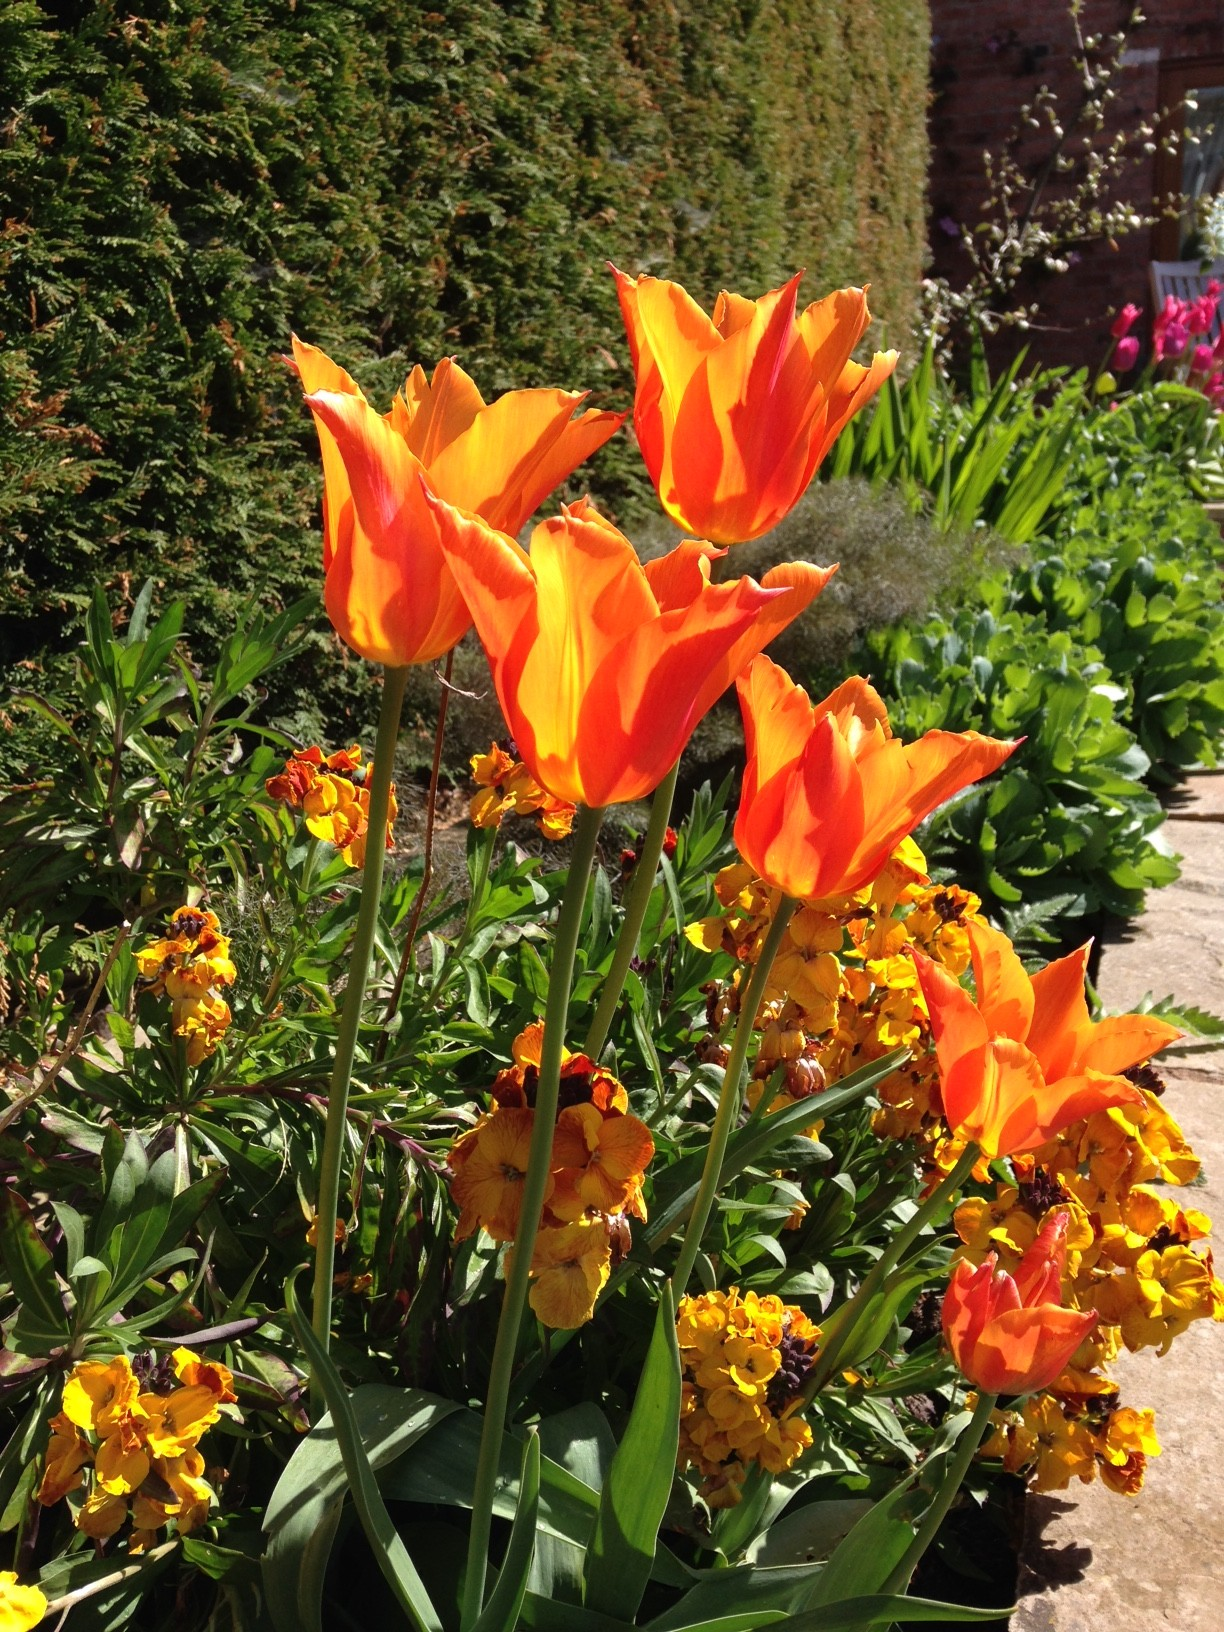 tulip ballerina in the sun along with a wallflower